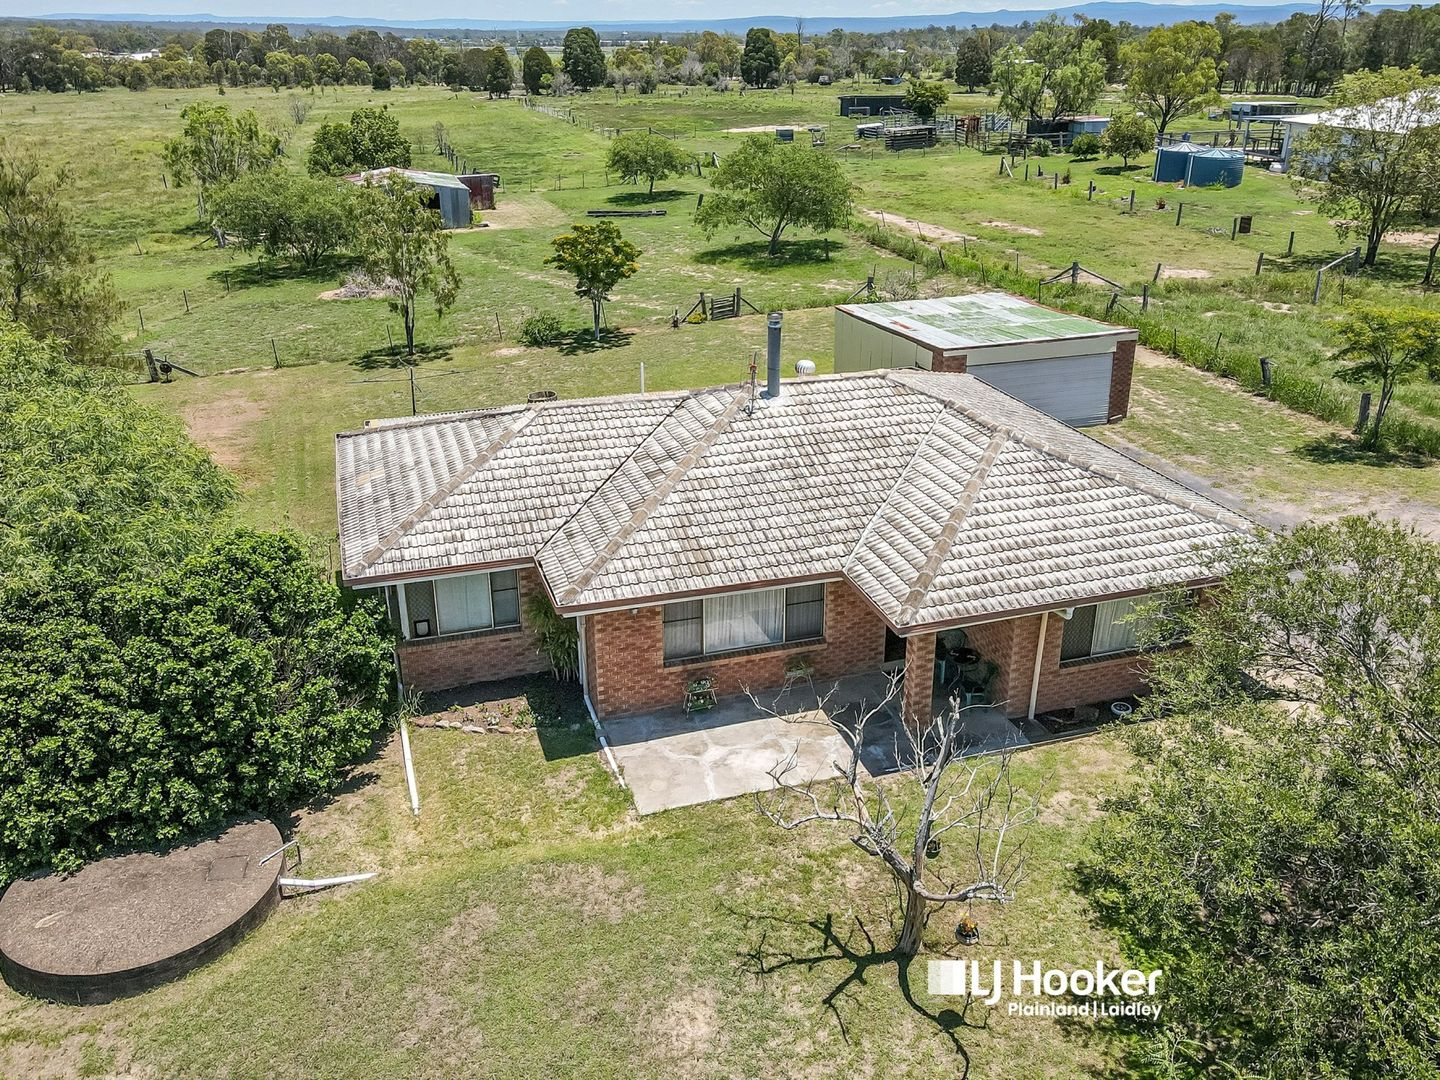 15 Laidley-Plainland Rd, Laidley North QLD 4341, Image 1